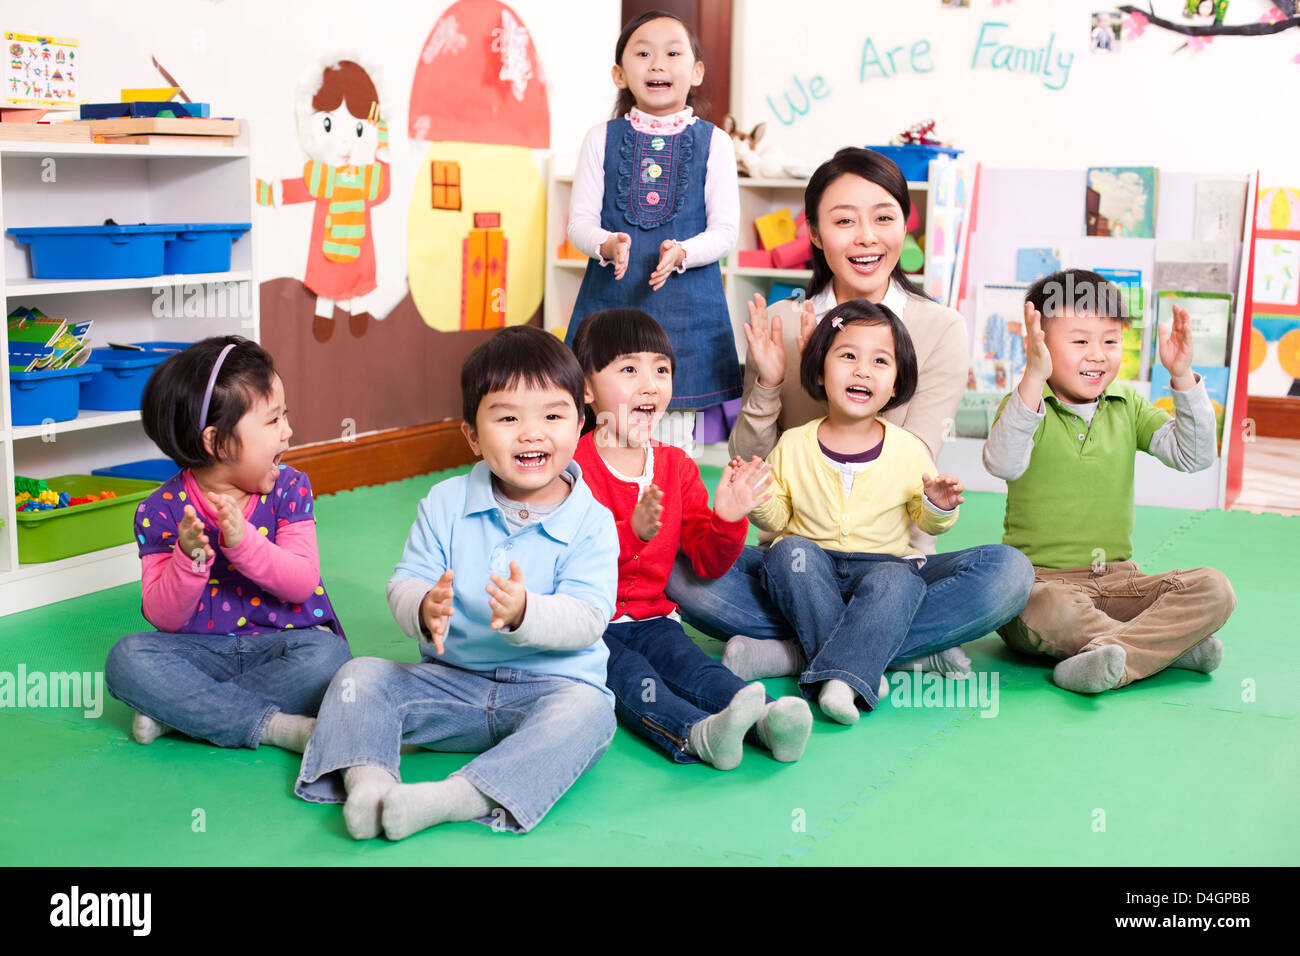 Female teacher and cute kindergarten children clapping hands and stock photo 54458527 alamy - Children s day images download ...